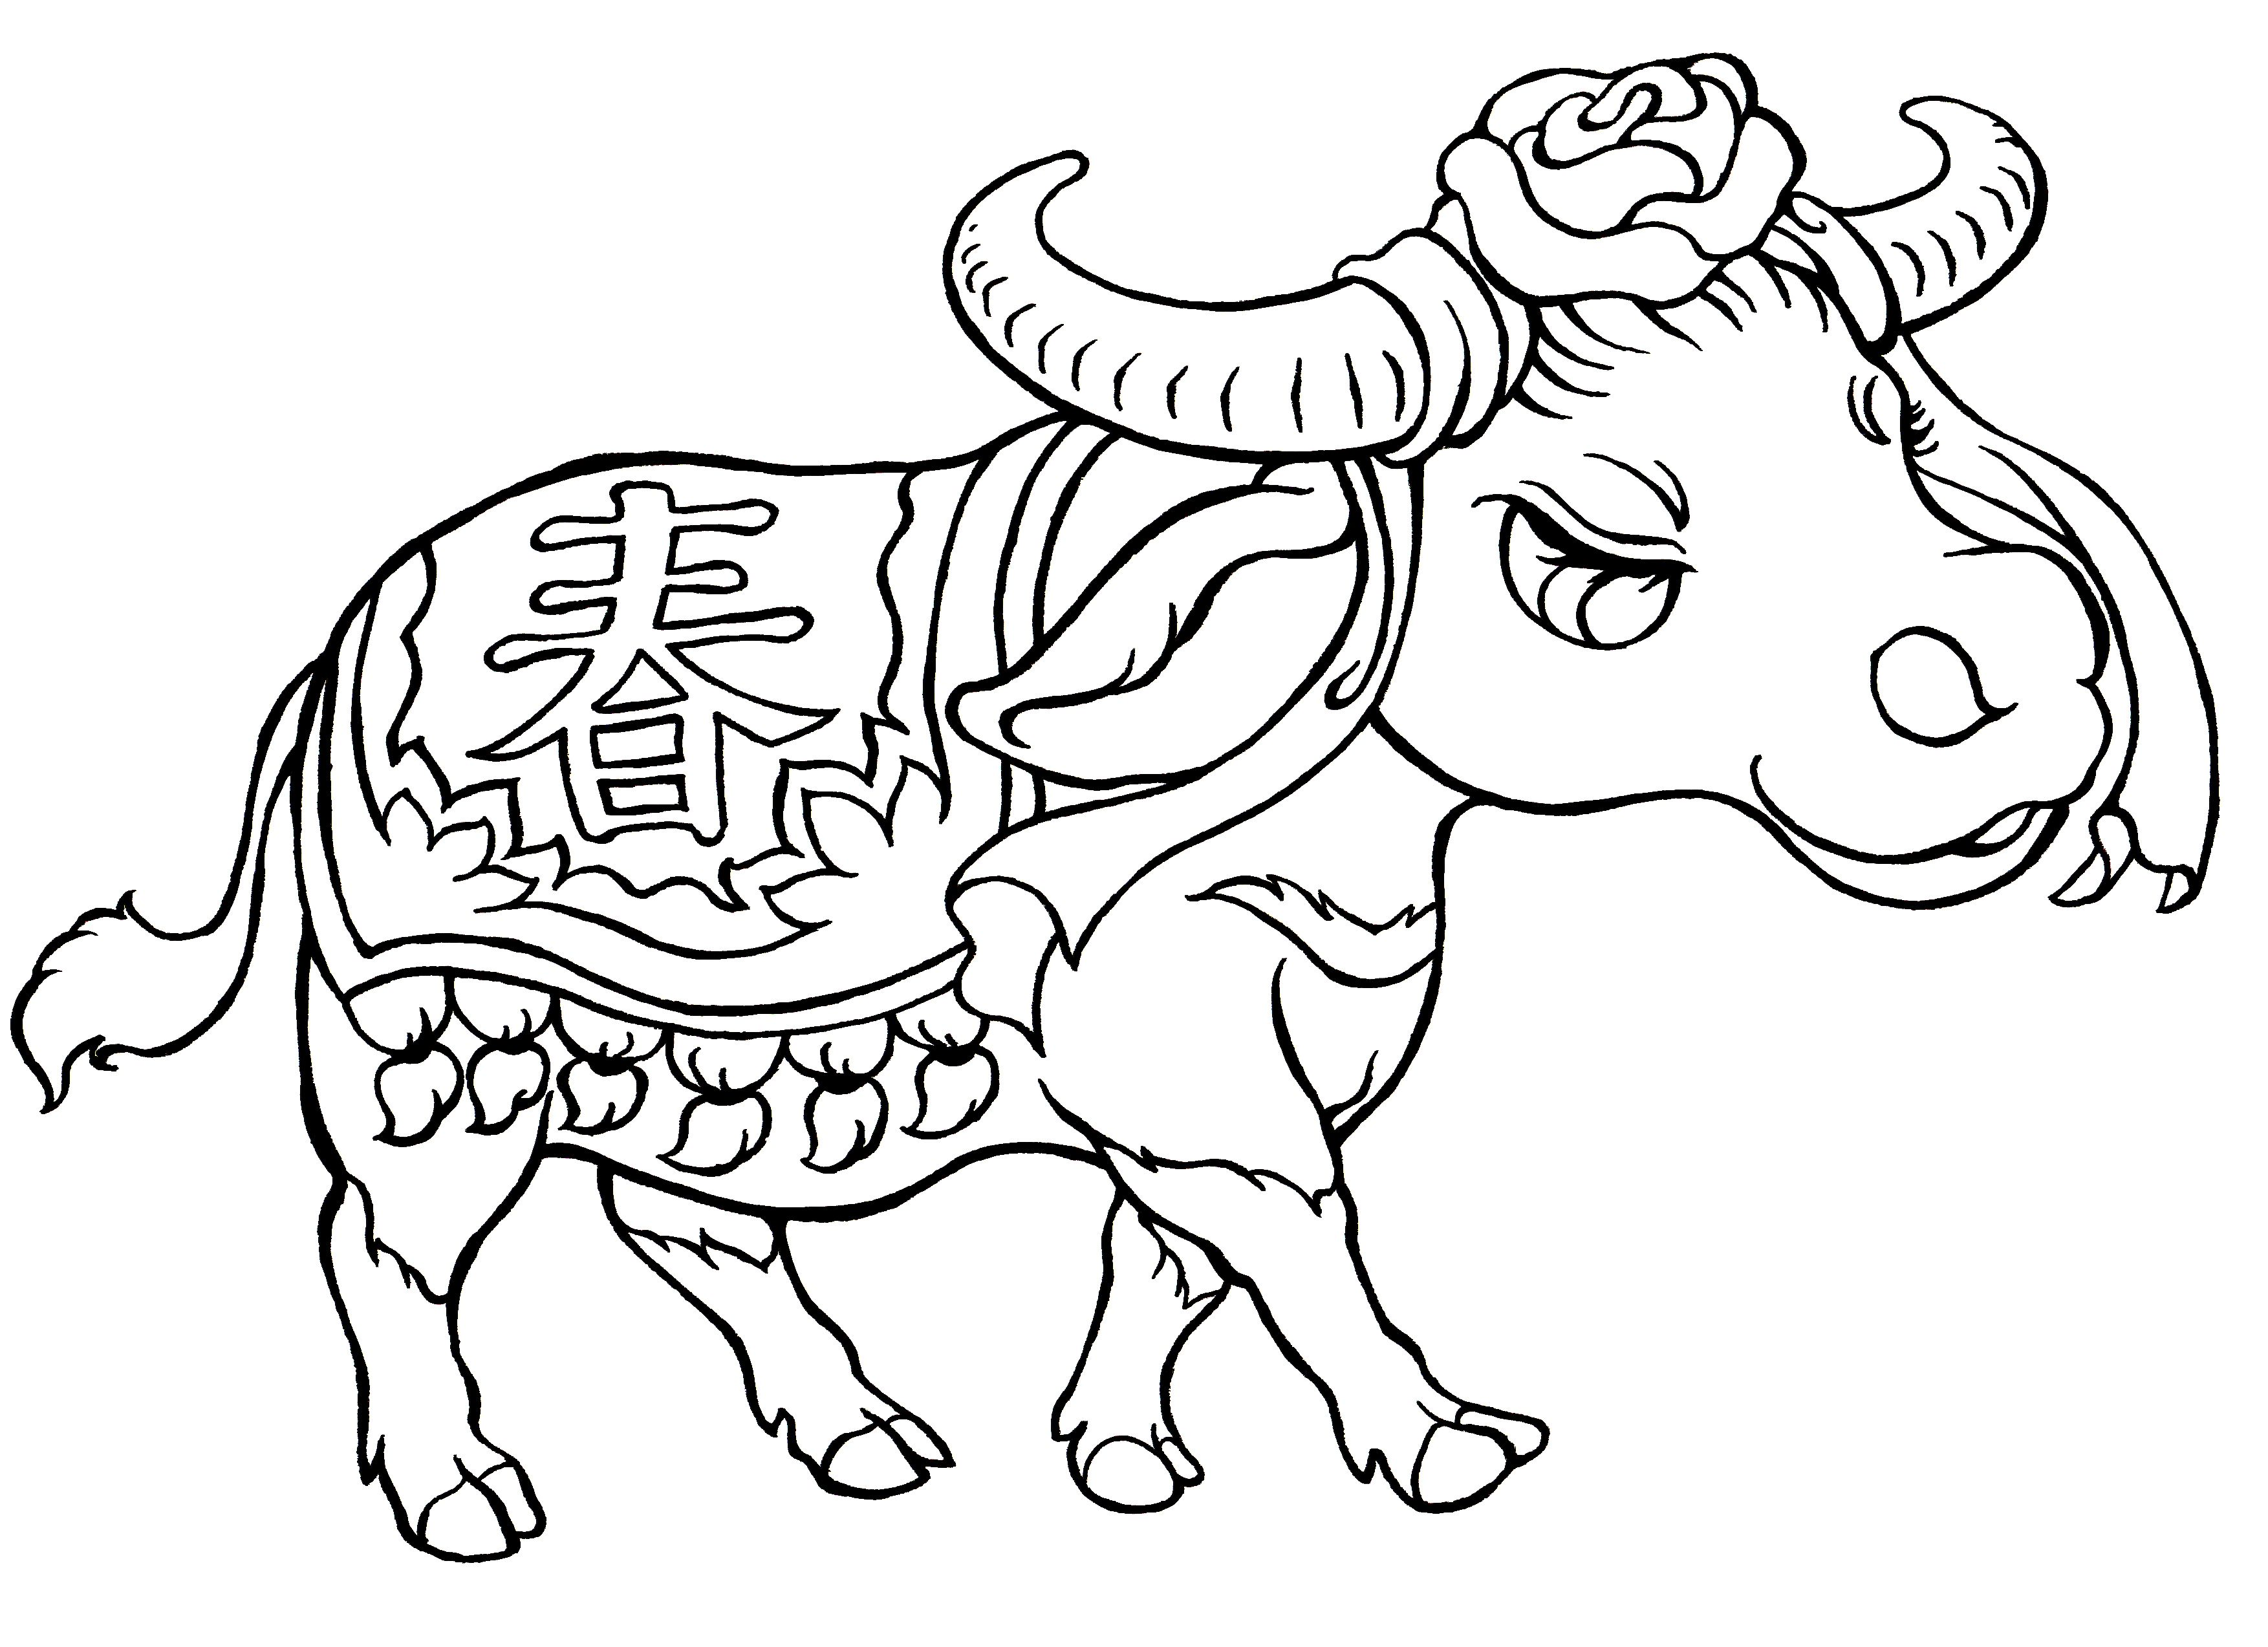 Year Of The Ox Free Colouring Sheet For Children From Snowflake